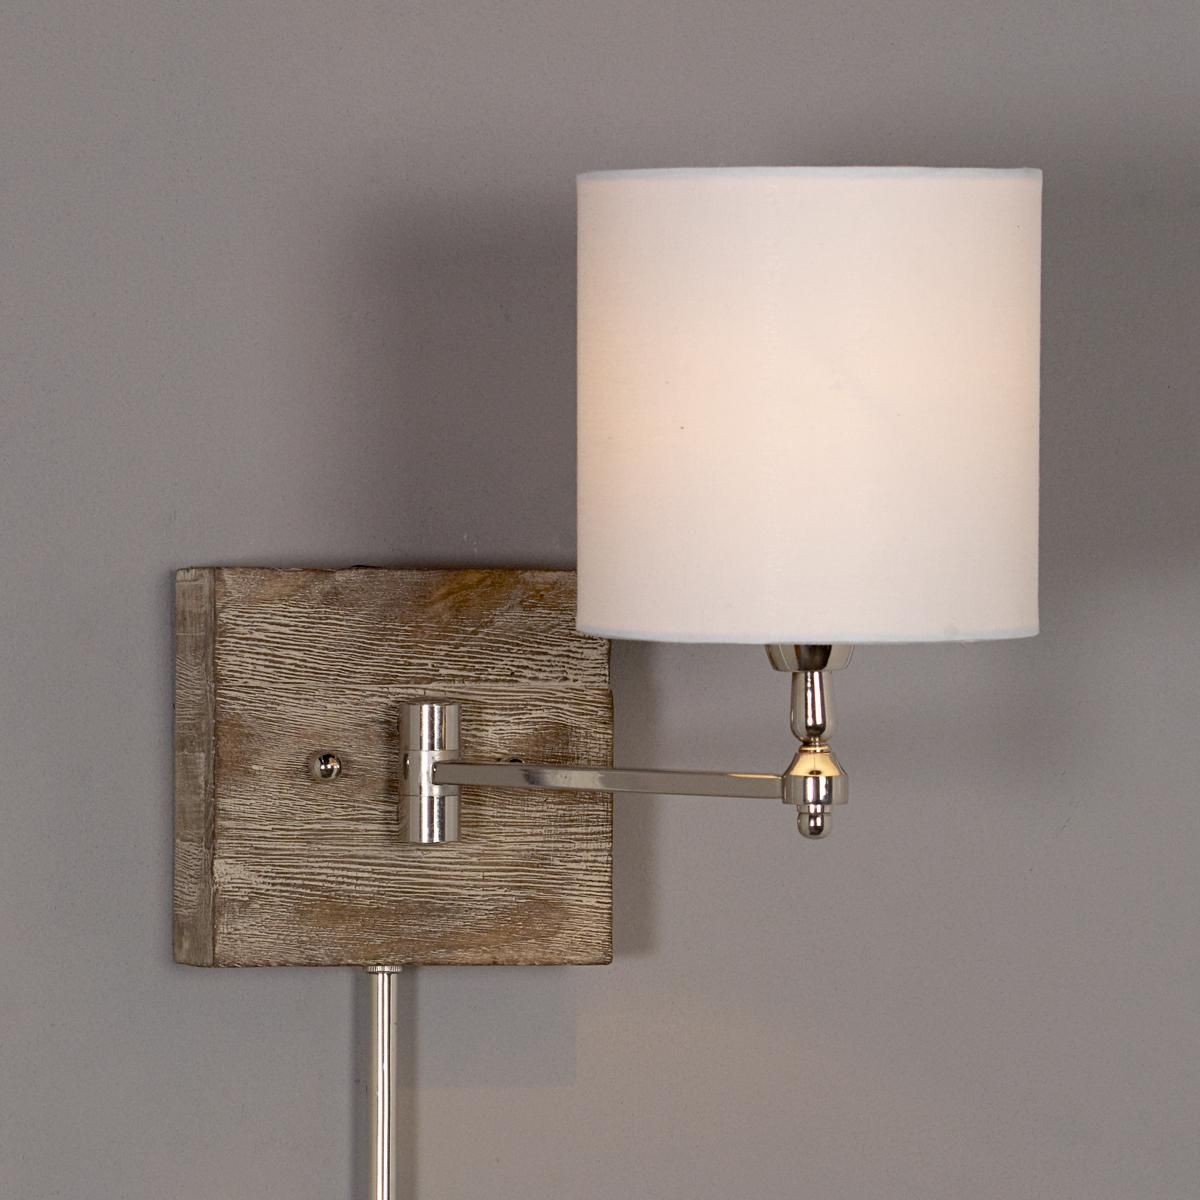 Bedside Wall Sconces Reclaimed Wood Swing Arm Wall Lamp In 2019 Weathered